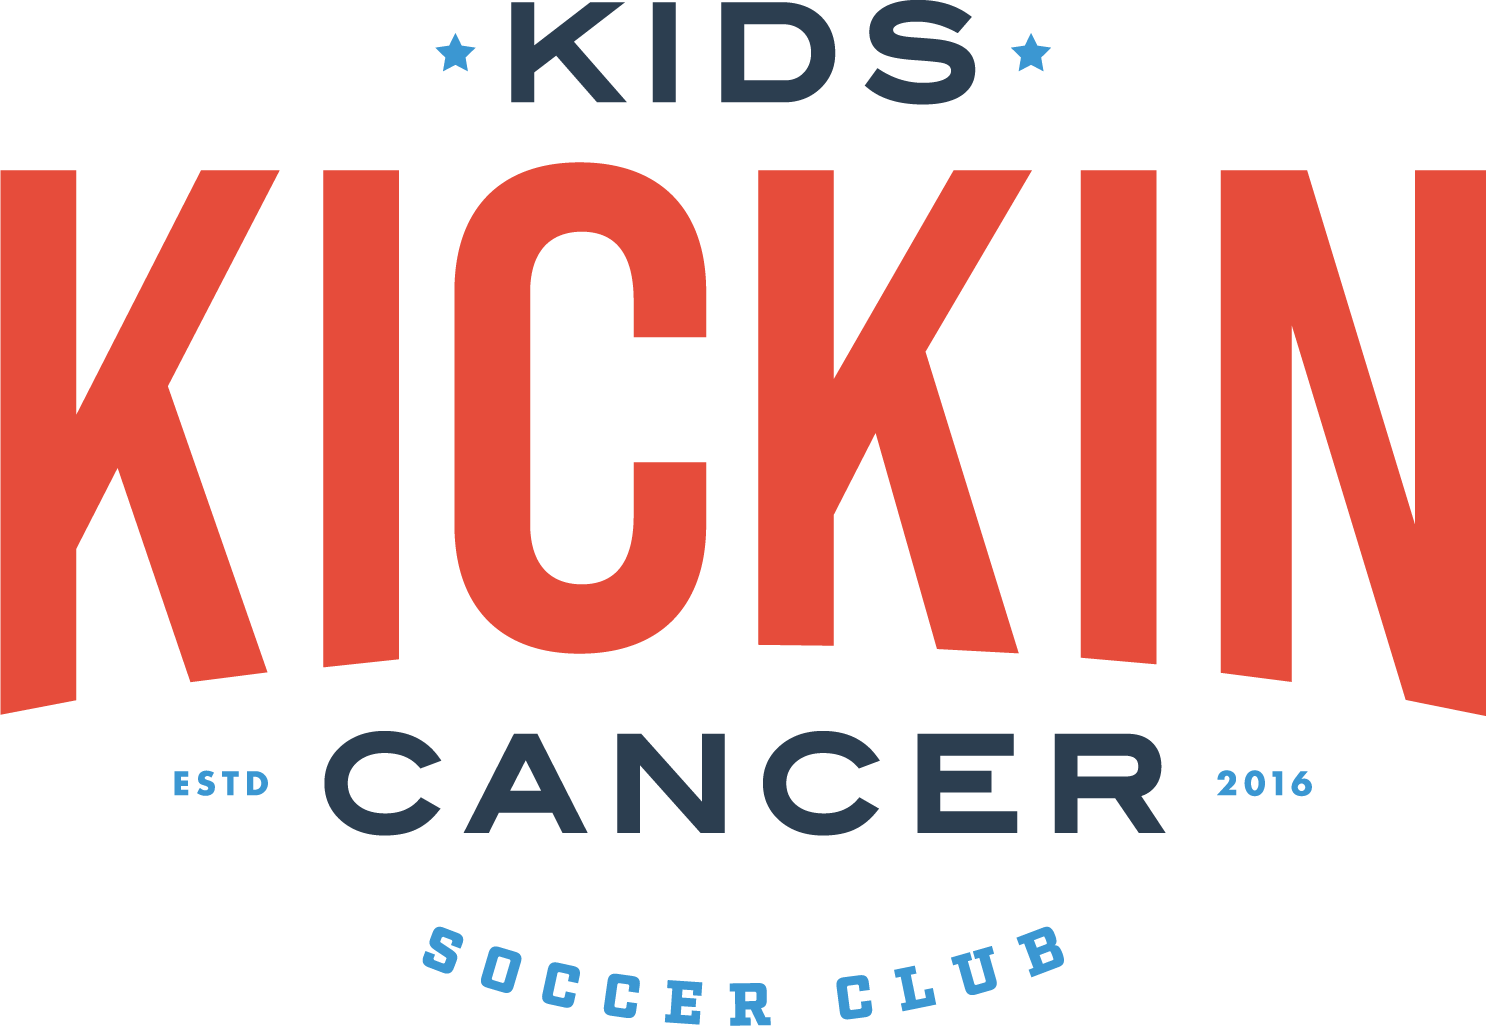 Kids Kickin Cancer